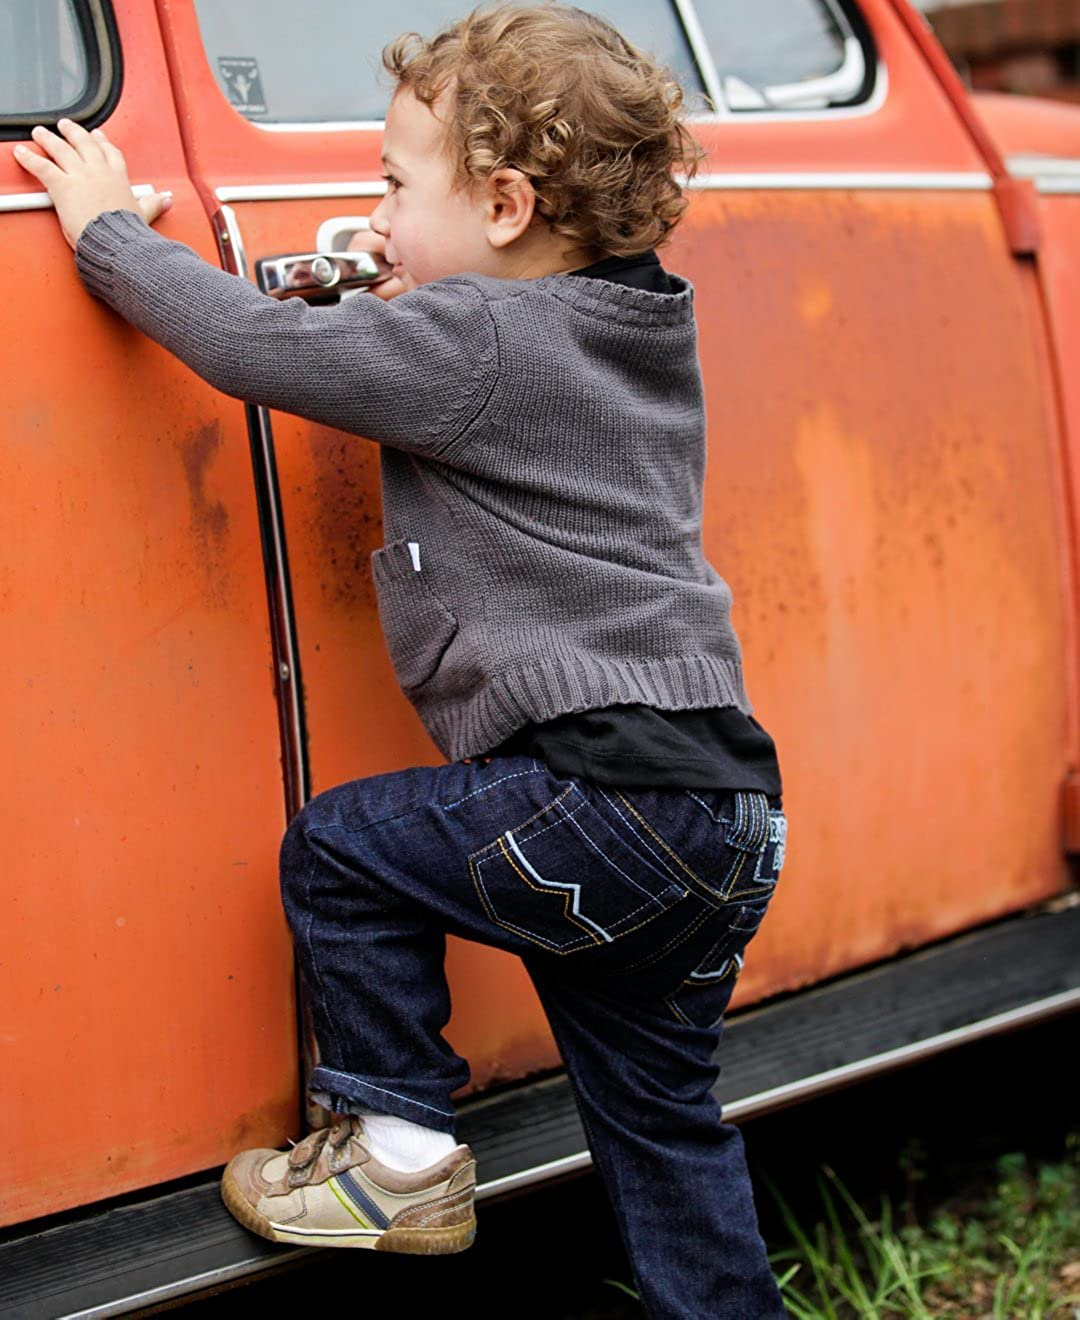 RuggedButts Baby//Toddler Boys Adjustable Waist Slim Jeans BPDYYXX-SLIM-SC-BABY